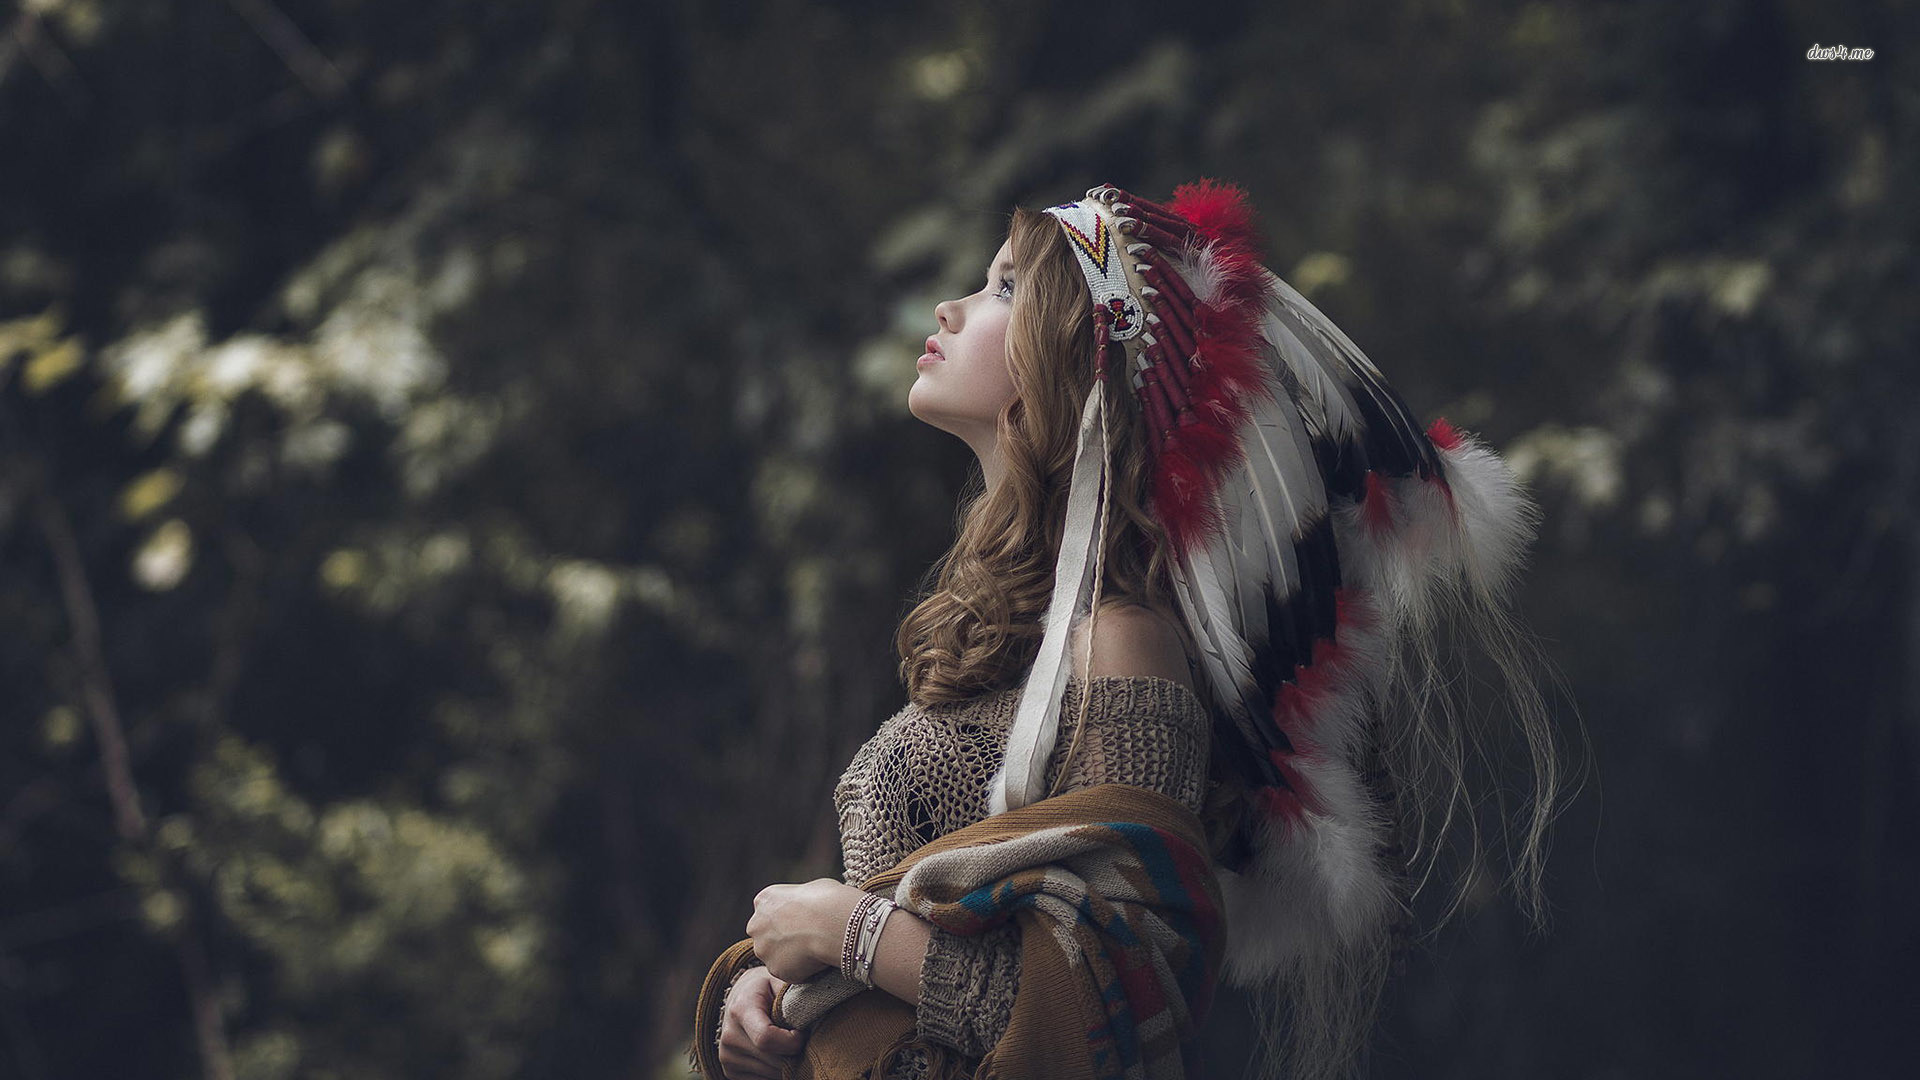 1920x1080 Girl Native American Backgrounds | Wallpapers, Backgrounds, Images .